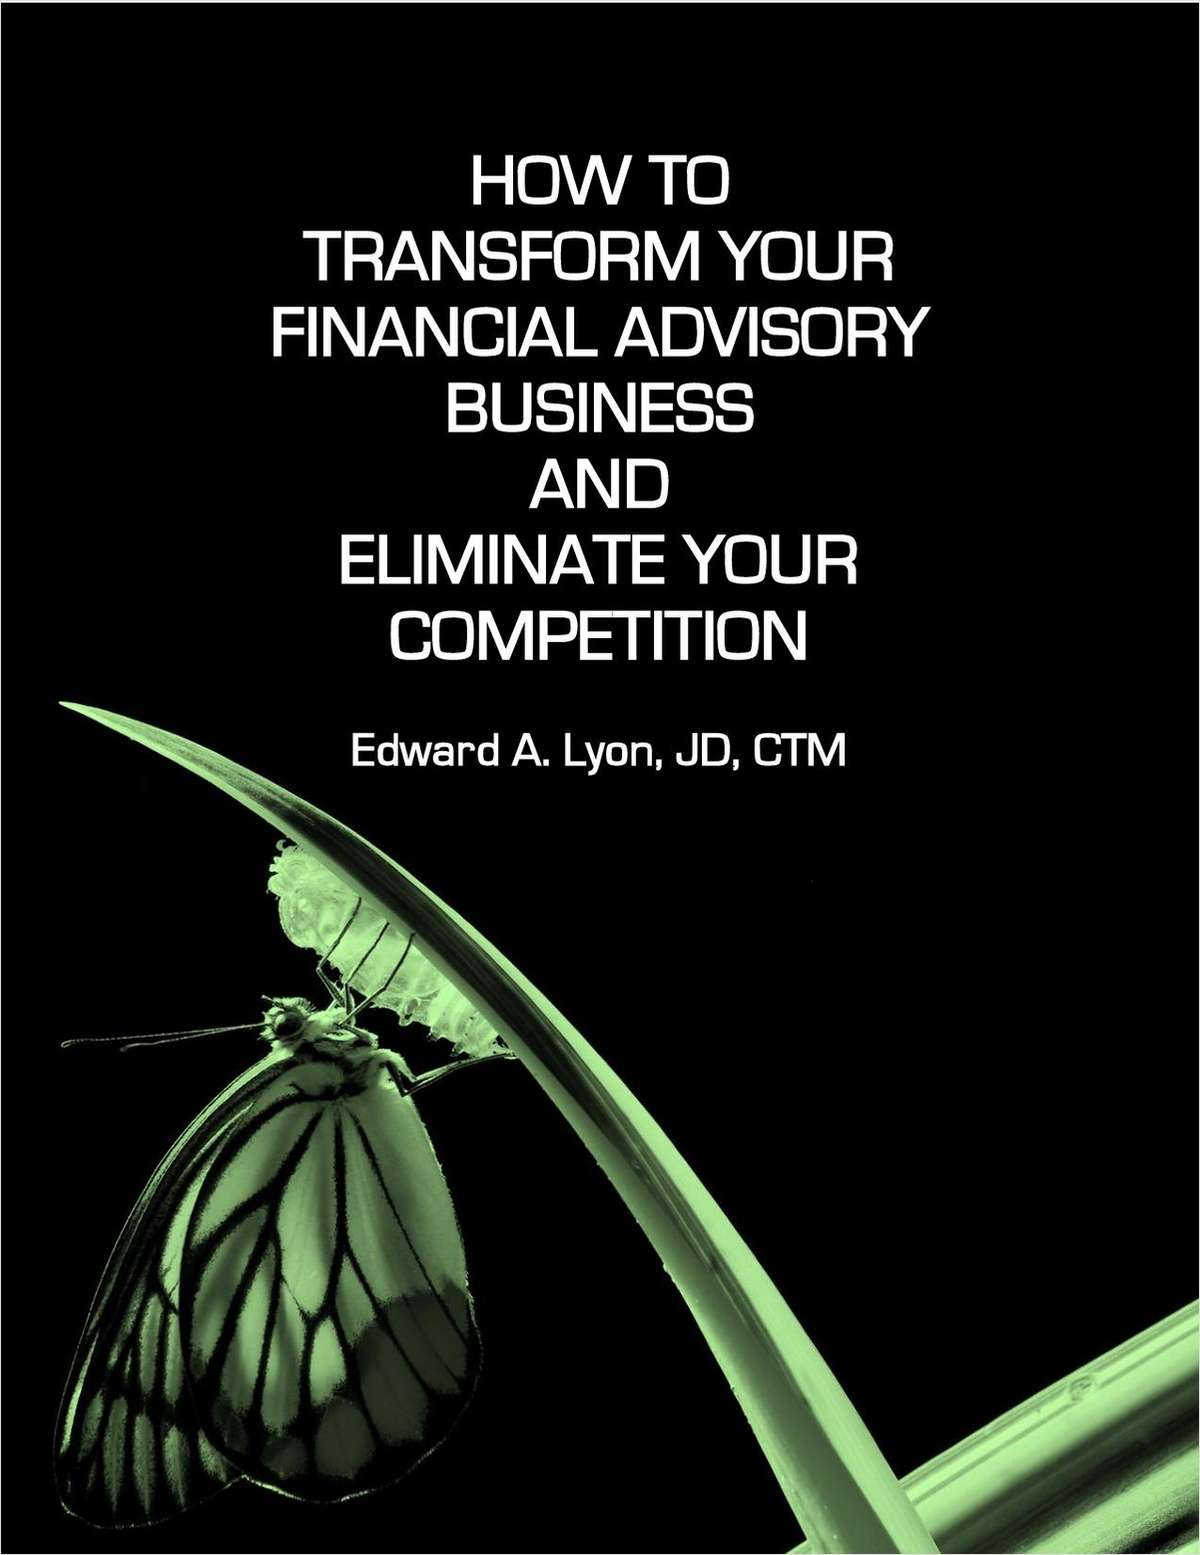 Transform Your Financial Advisory Business and Eliminate Your Competition